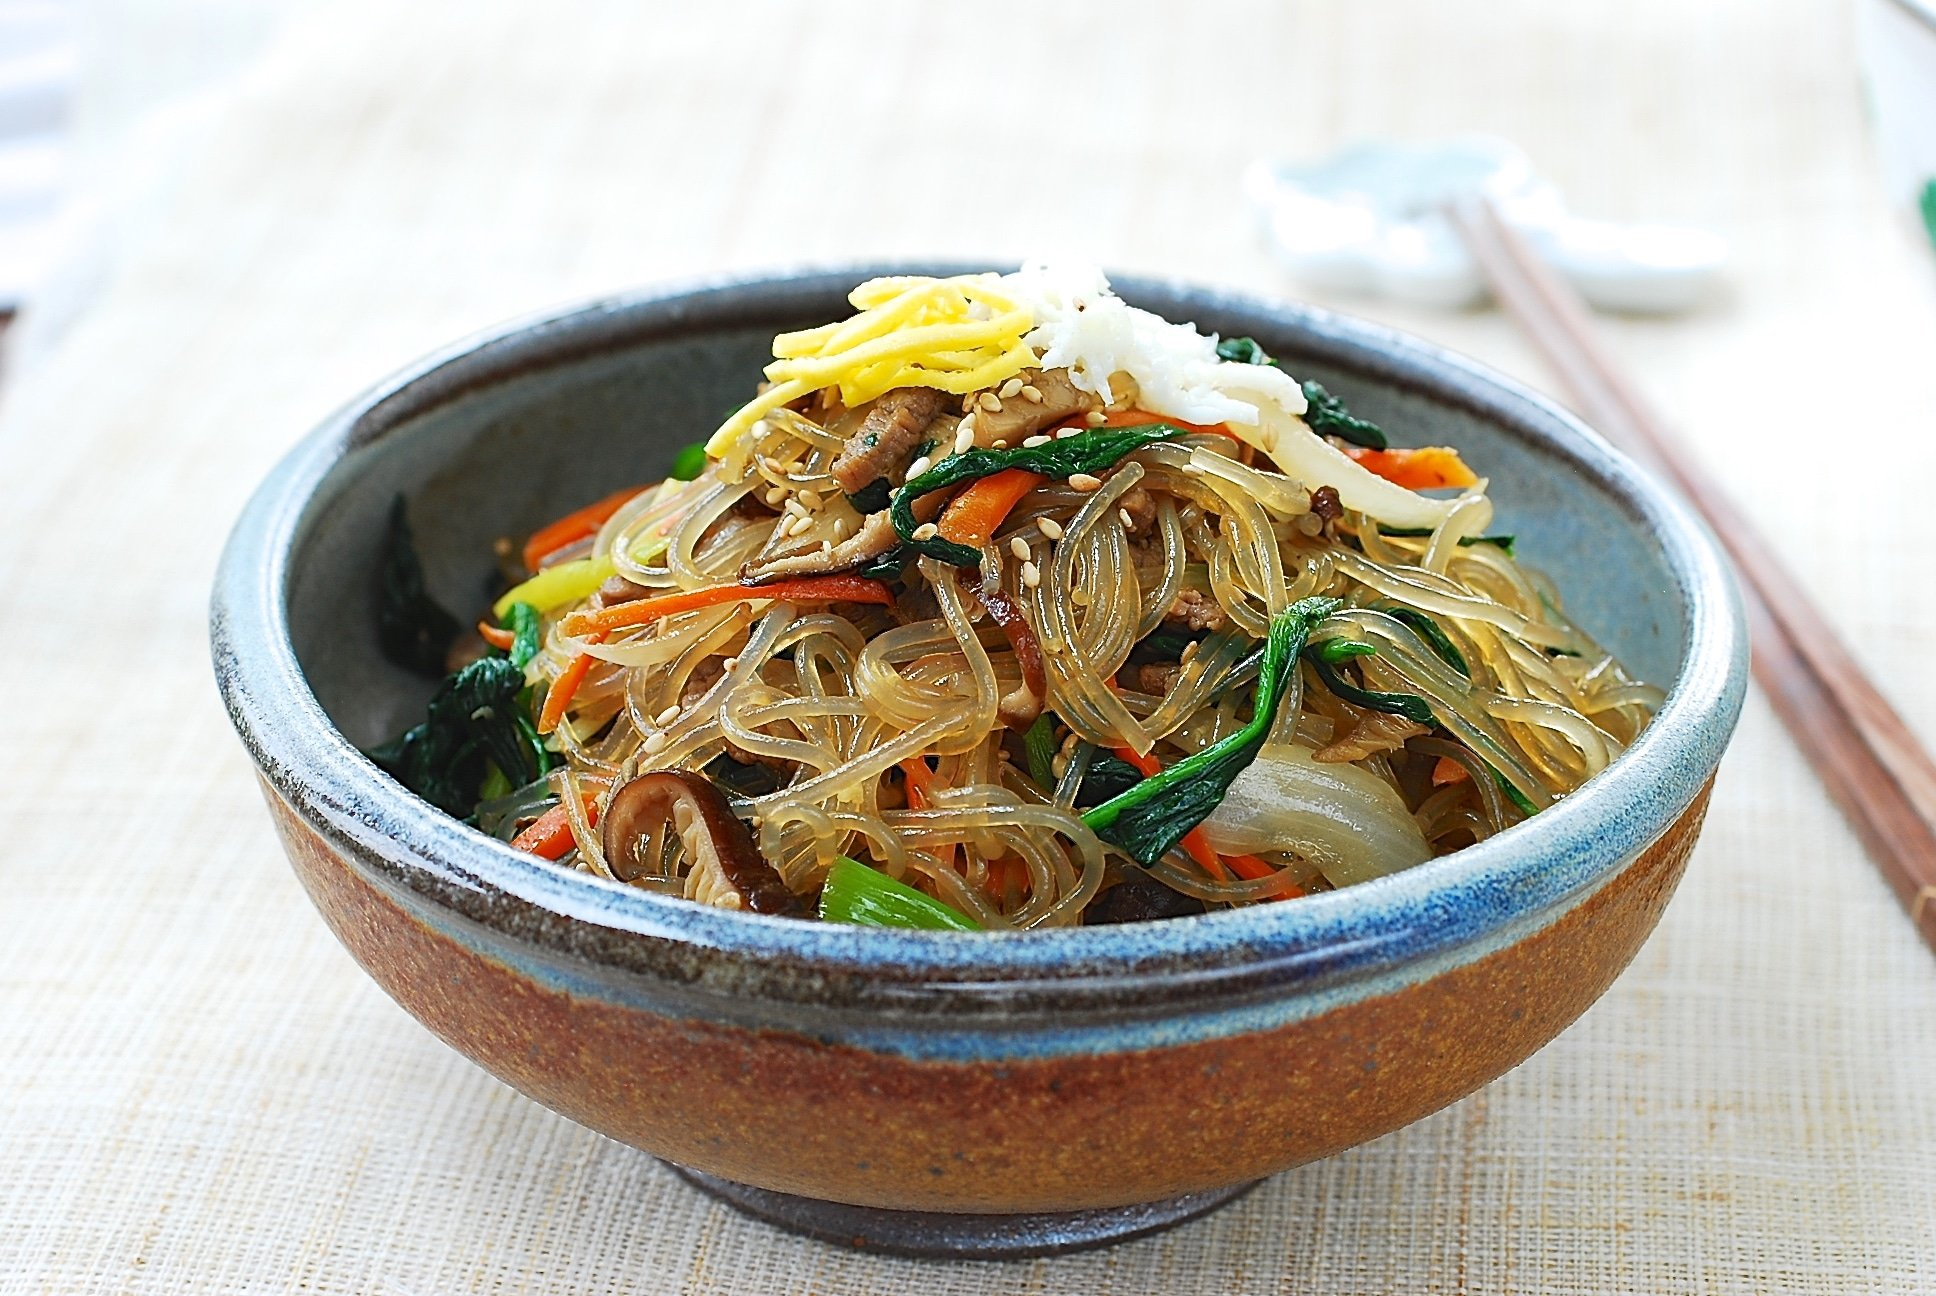 DSC 1052 1 - Japchae (Stir-Fried Starch Noodles with Beef and Vegetables)